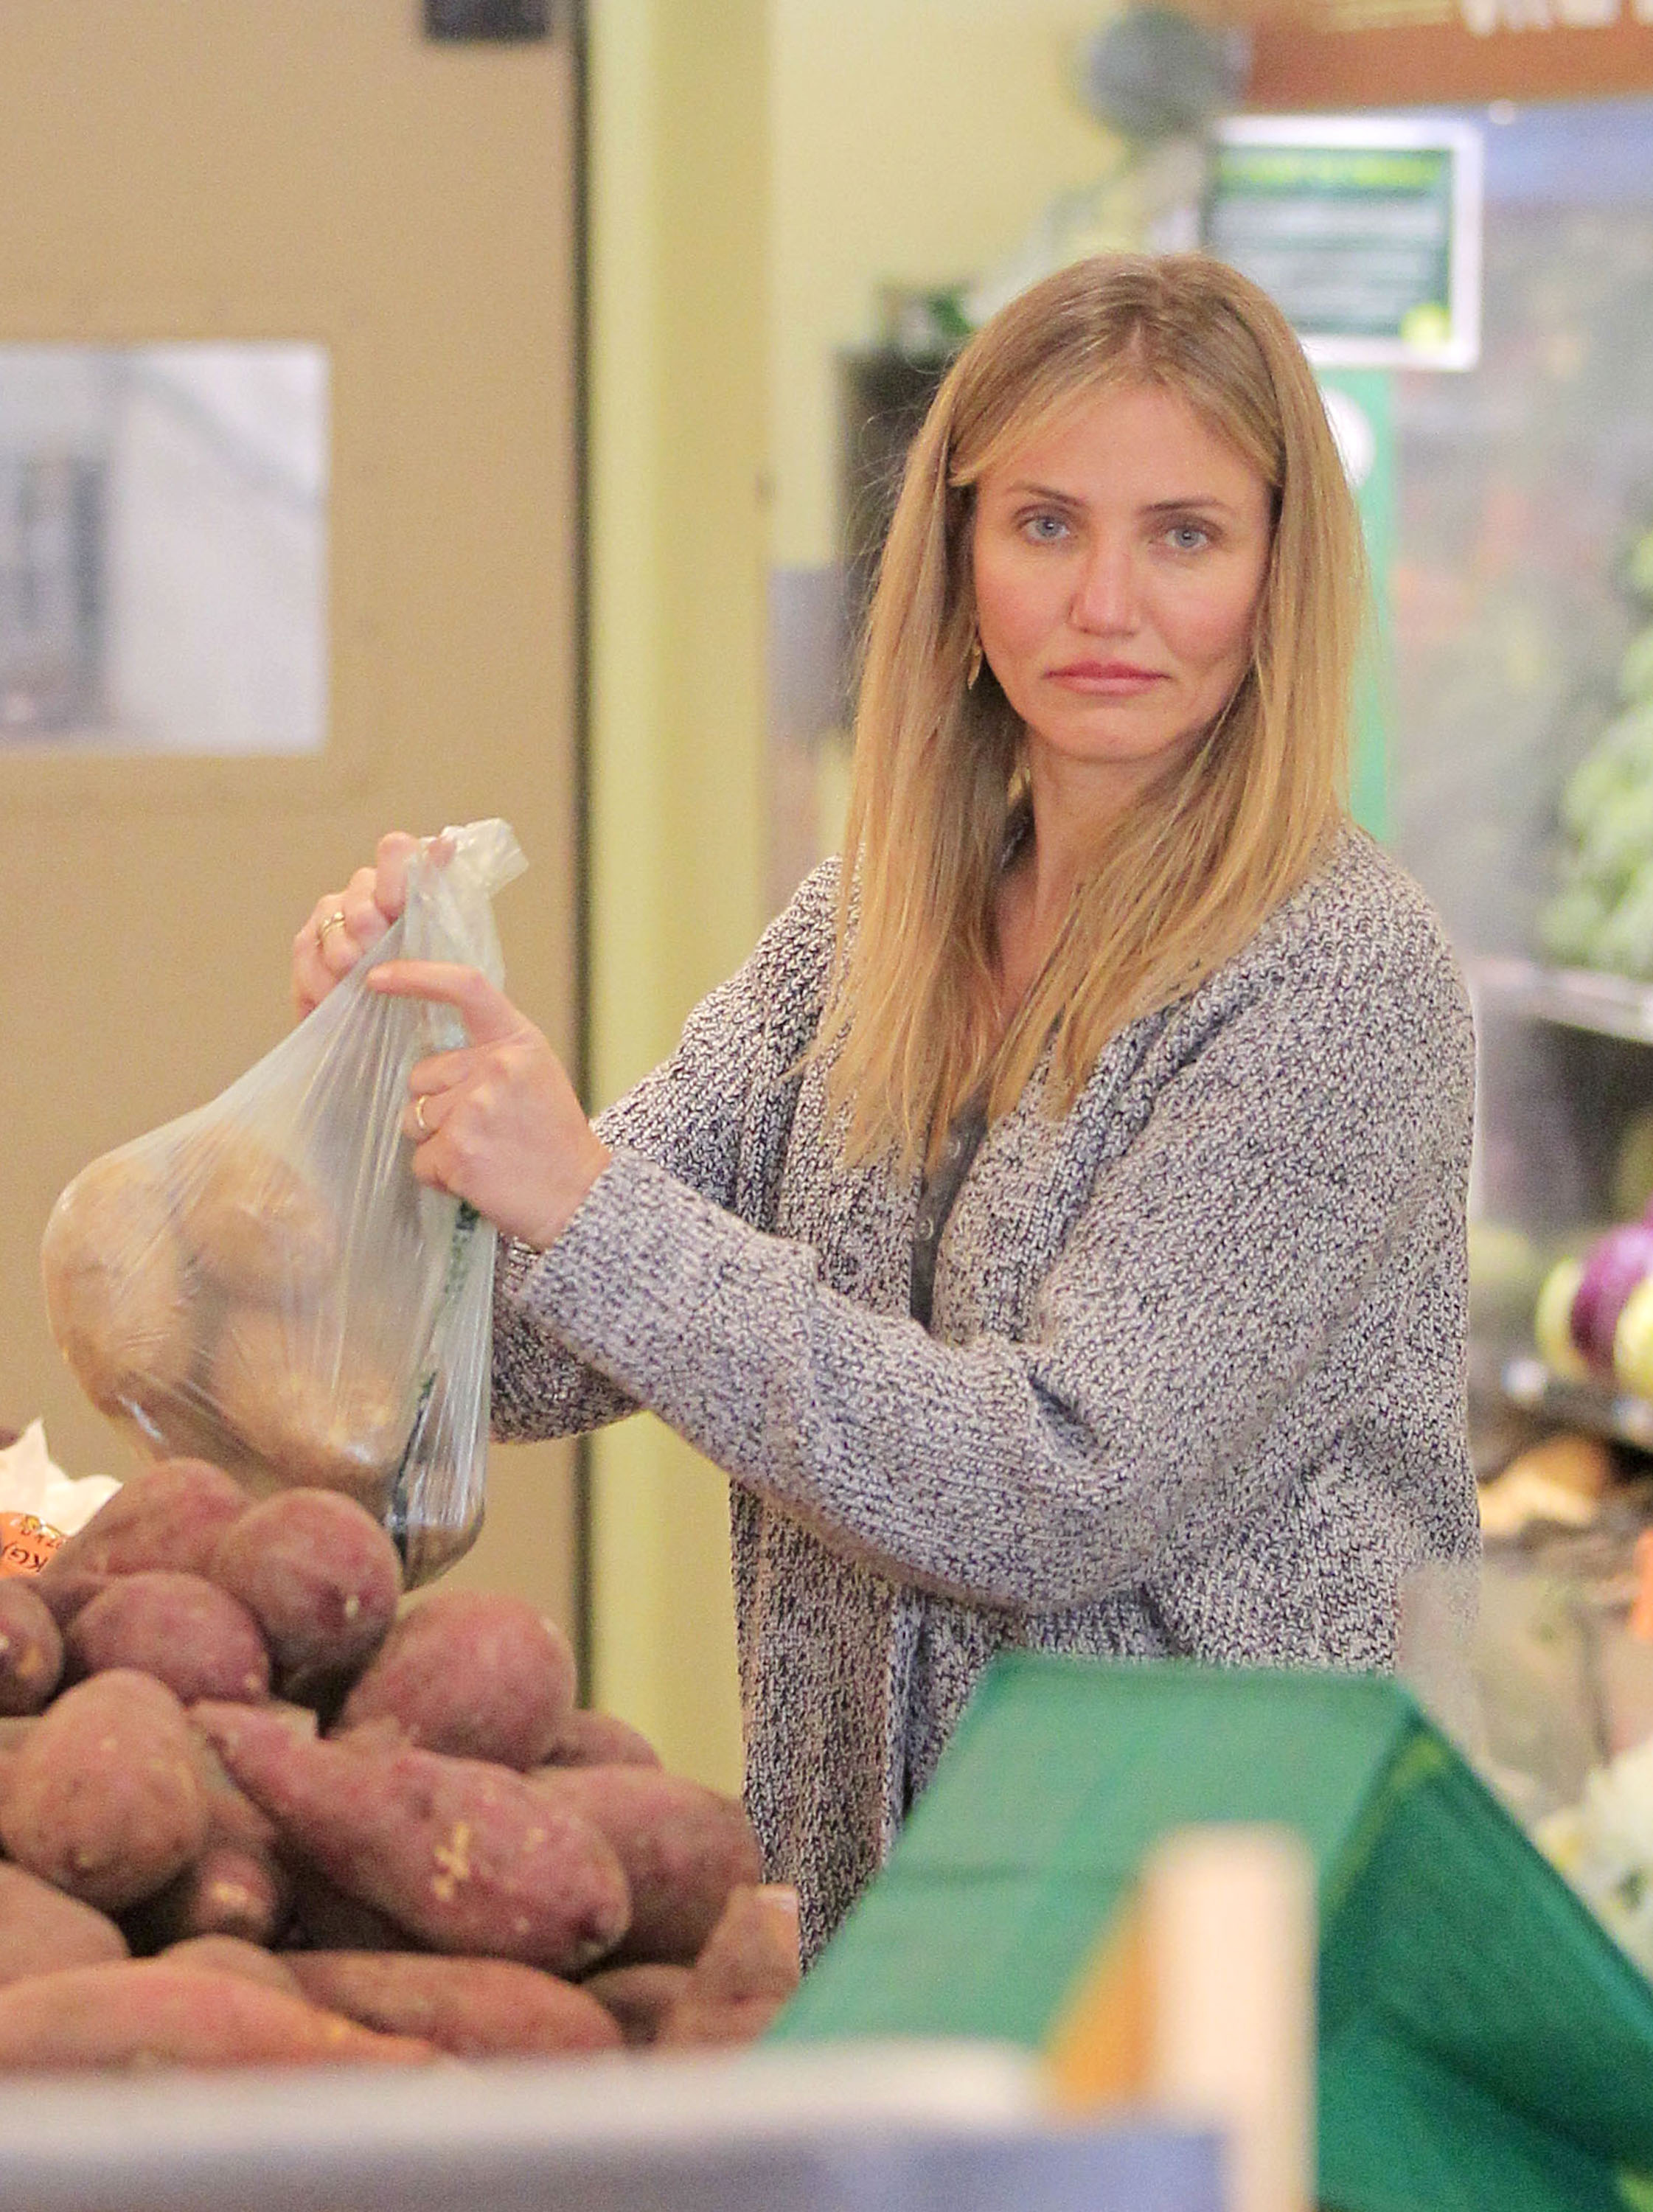 EXCLUSIVE Cameron Diaz Goes Makeup Free To Do Some Eco Friendly Shopping